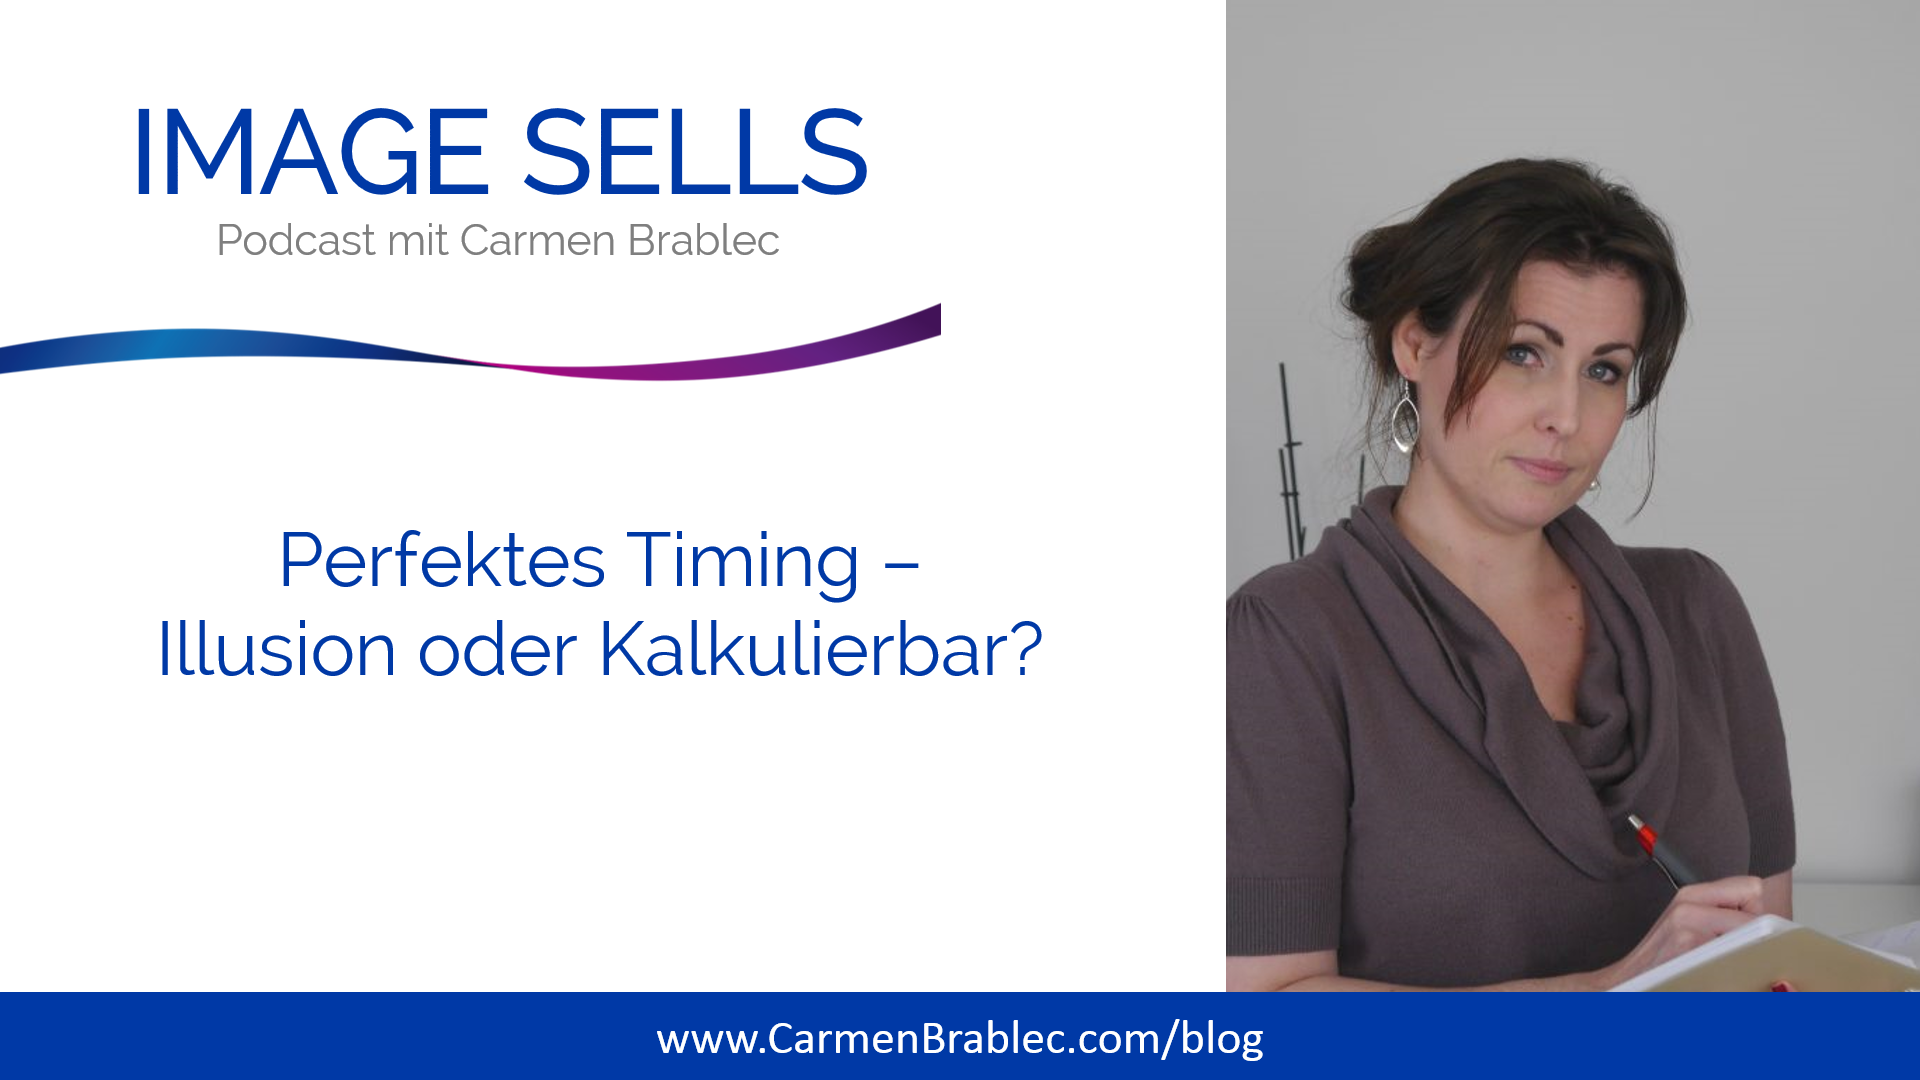 Perfektes Timing – Illusion oder Kalkulierbar – ISP #055